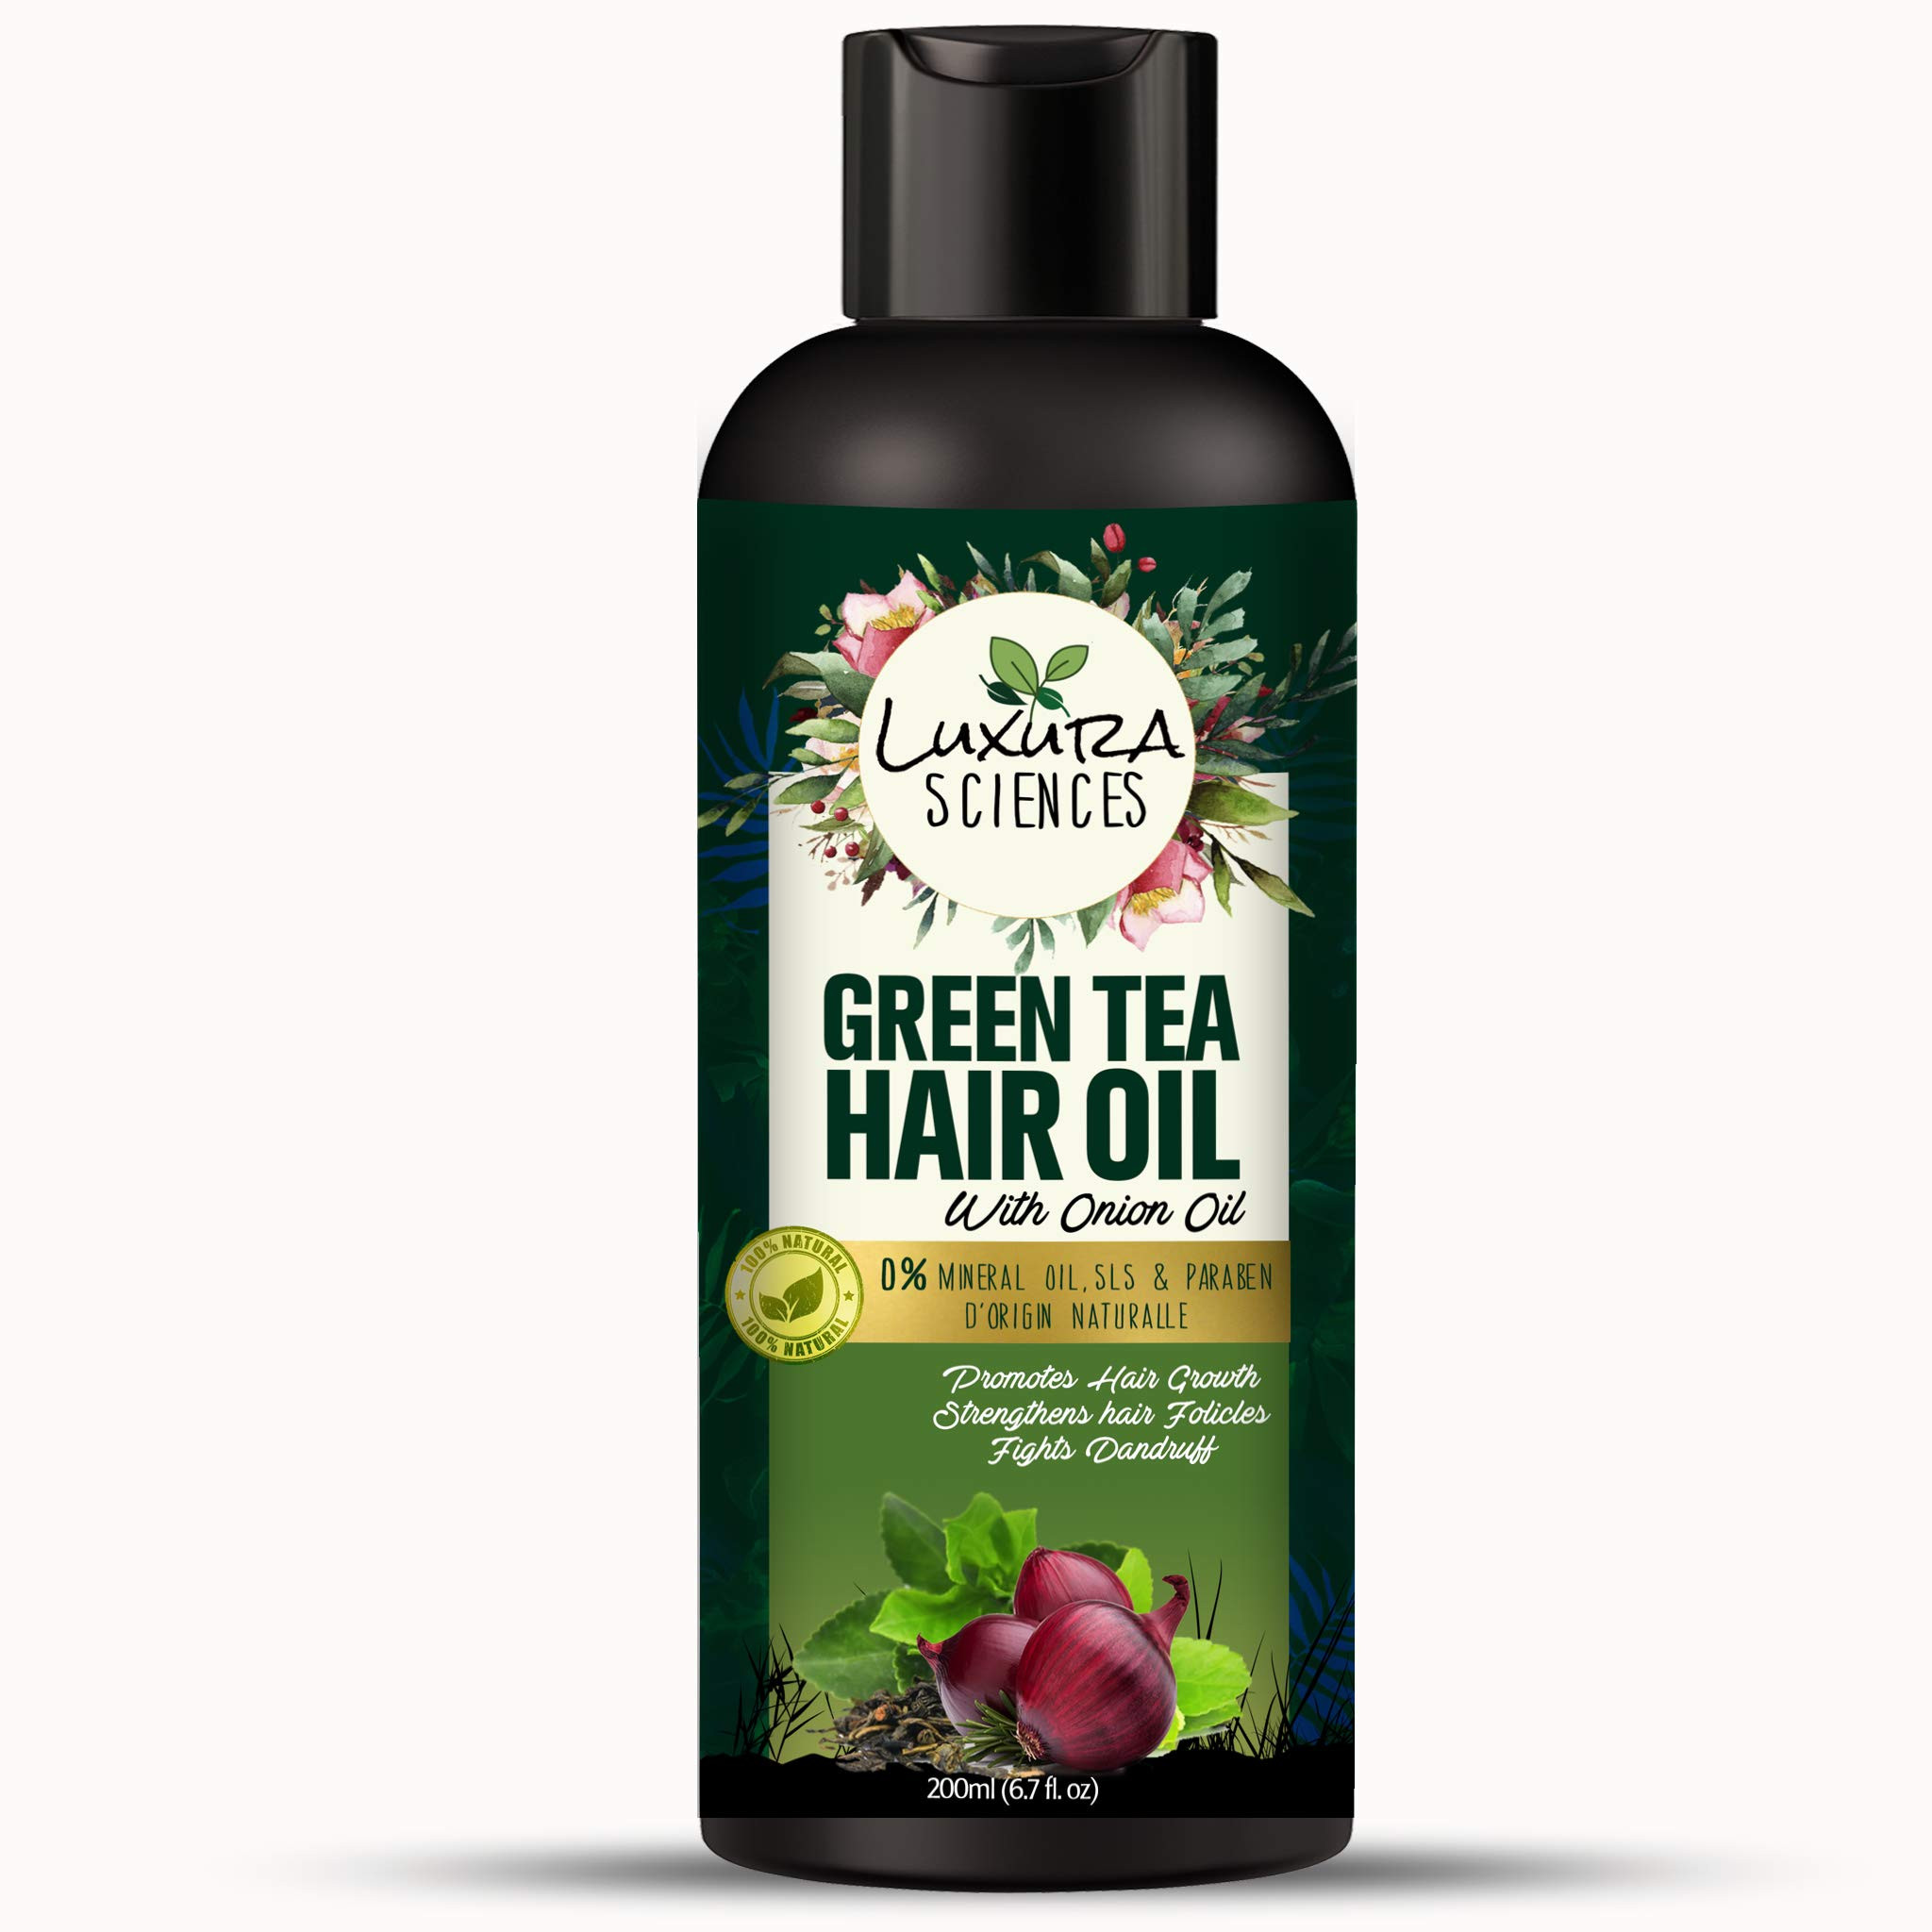 Luxura Sciences Green Tea Hair Oil with Onion Oil 200ml for Hair Improvement.